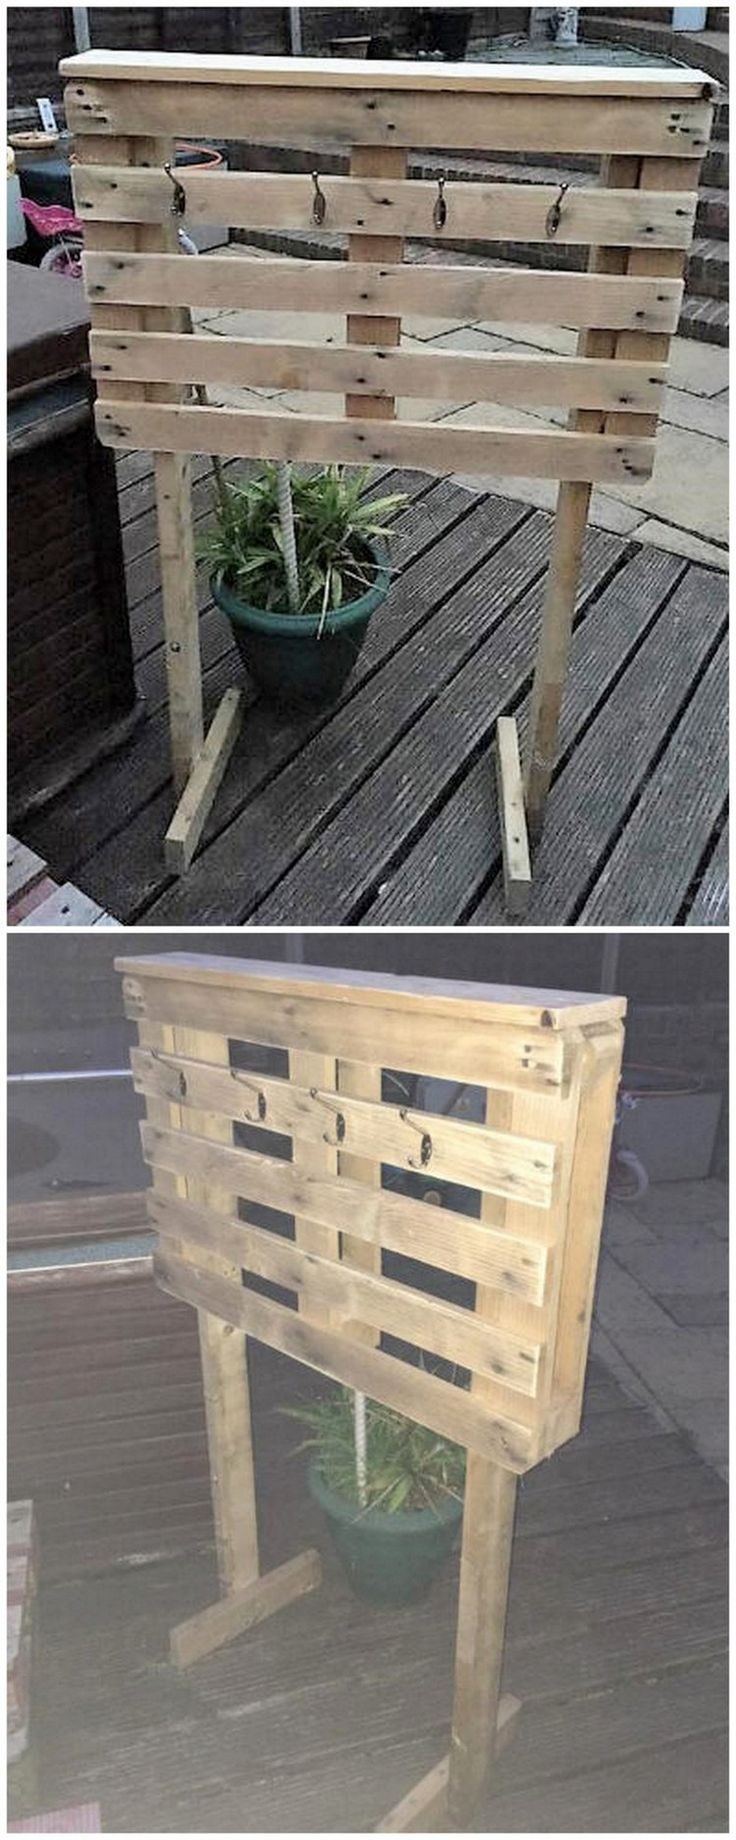 If you have a swimming pool huge area in your house garden then you should also be well maintained with all important accessories of swimming pool. Place a simple created wood pallet towel rack stand by the side of the swimming pool for the helping hand of your friends.